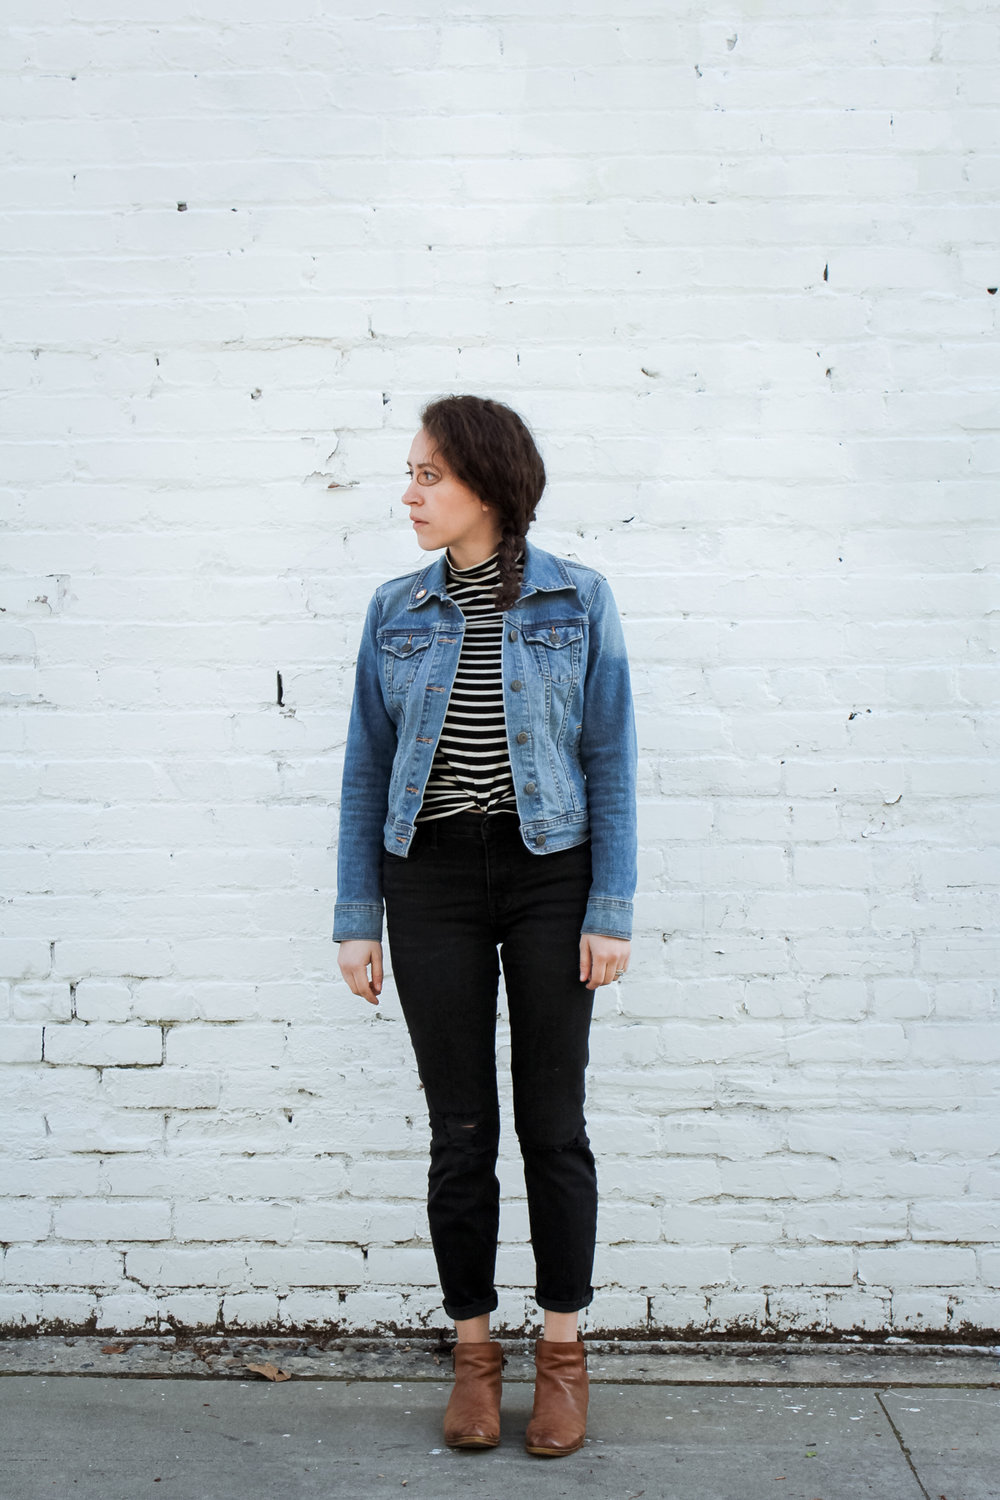 i wore a striped mockneck top with my madewell high rise jeans, lucky brand ankle boots and my old navy denim jacket as my outfit for day 8 of the unfancy remix/spring 10x10 challenge. all of these pieces are from my spring capsule wardrobe. it's crazy how versatile a small closet can be!